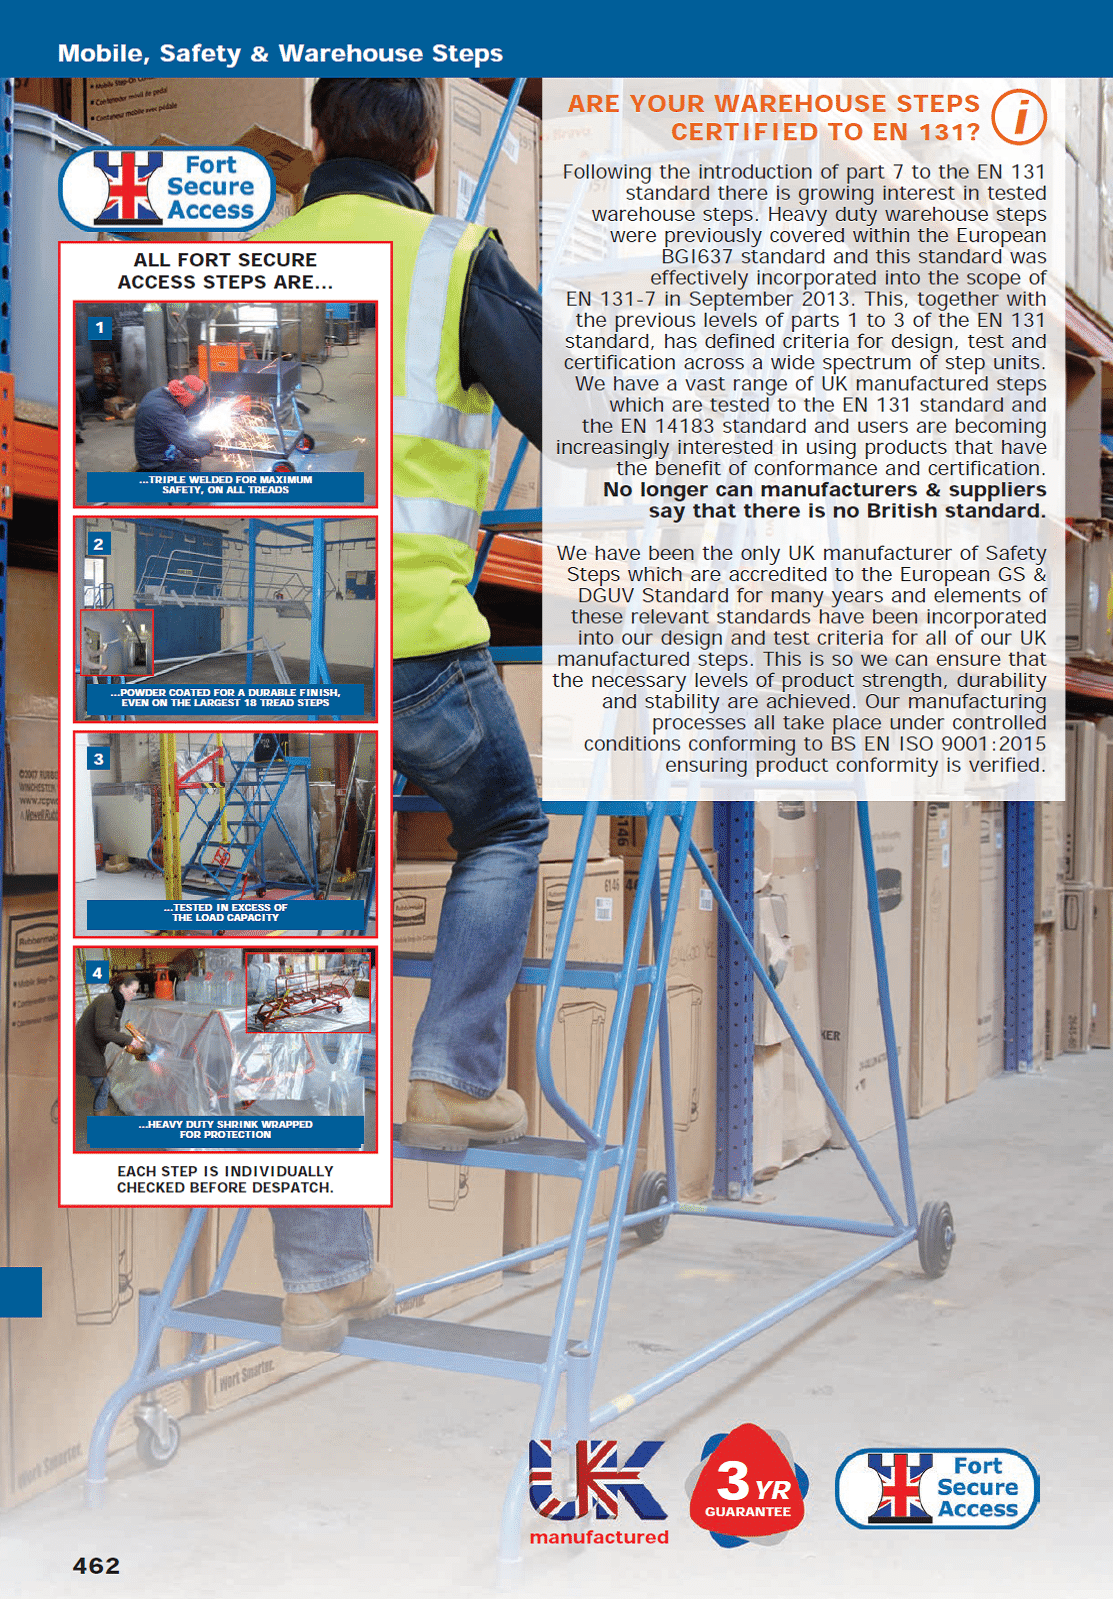 Mobile, Safety & Warehouse Steps